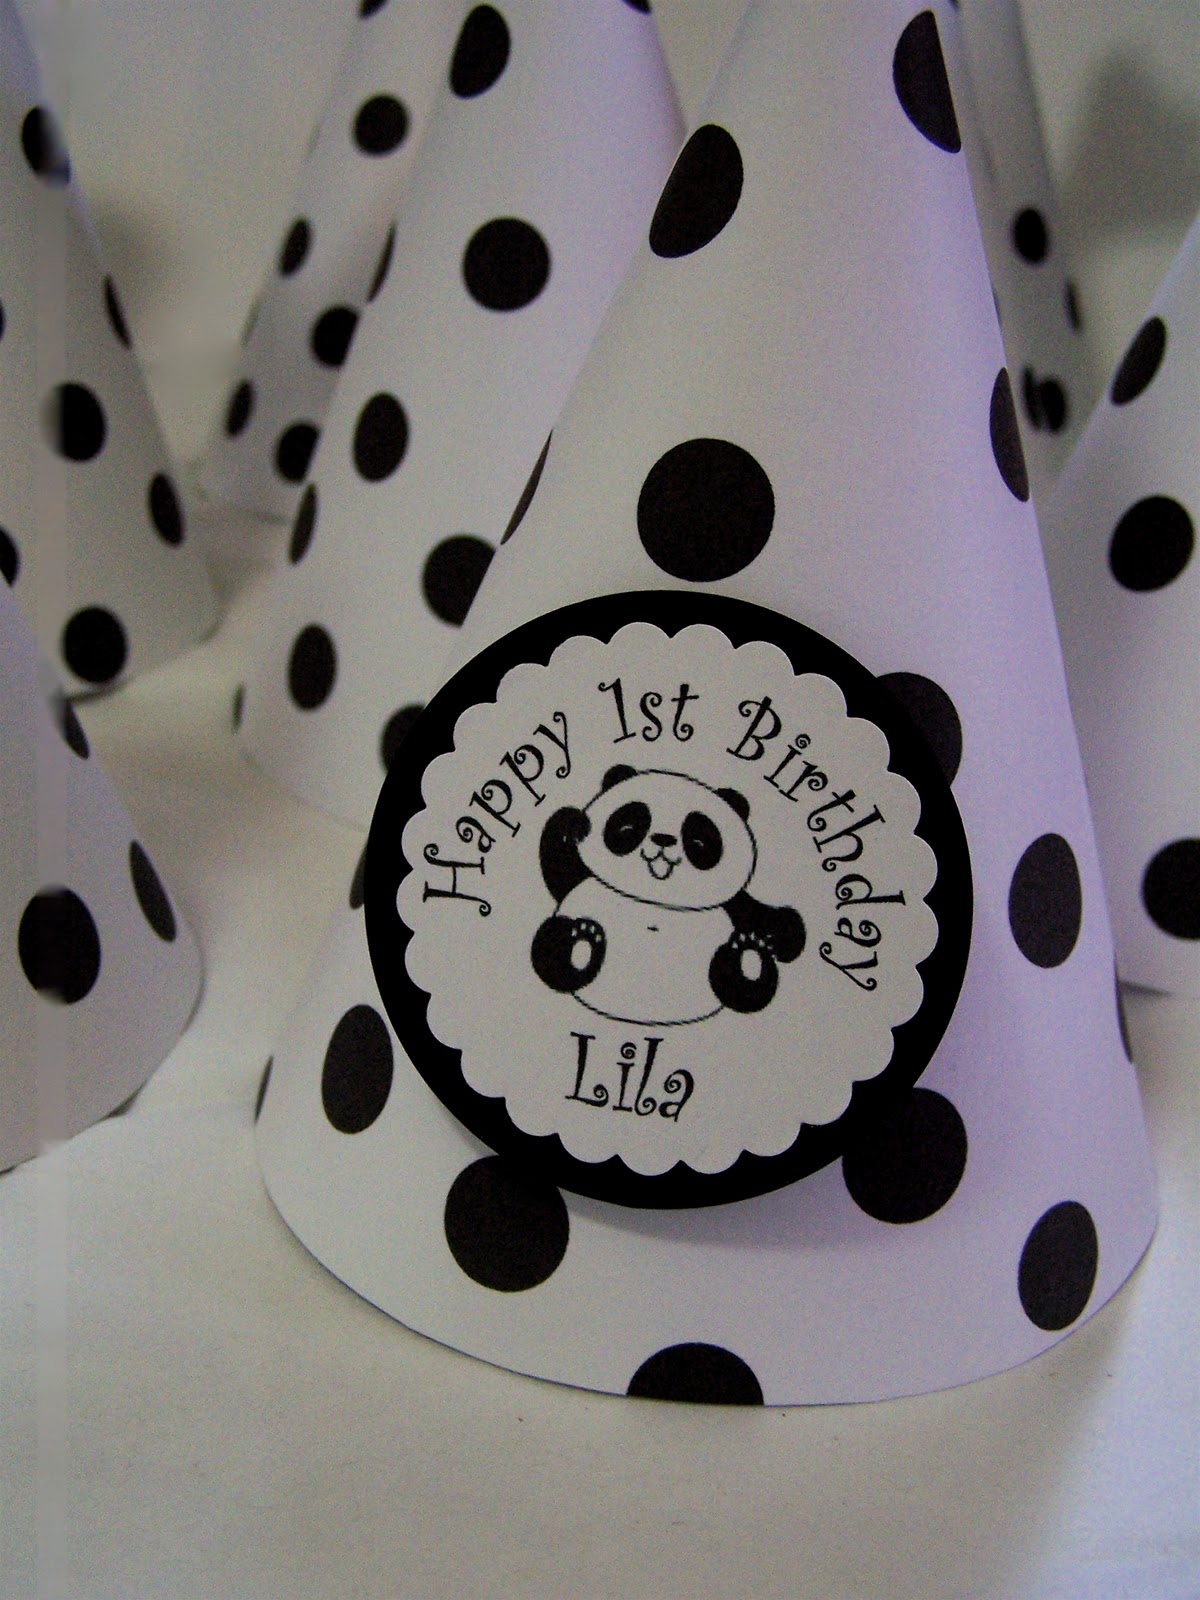 Google themes panda - Turn Your White Paper Lanterns Into A Cute Panda With 2 Pompoms And This Template Diy Paper Pinterest Paper Lanterns Awesome And The White